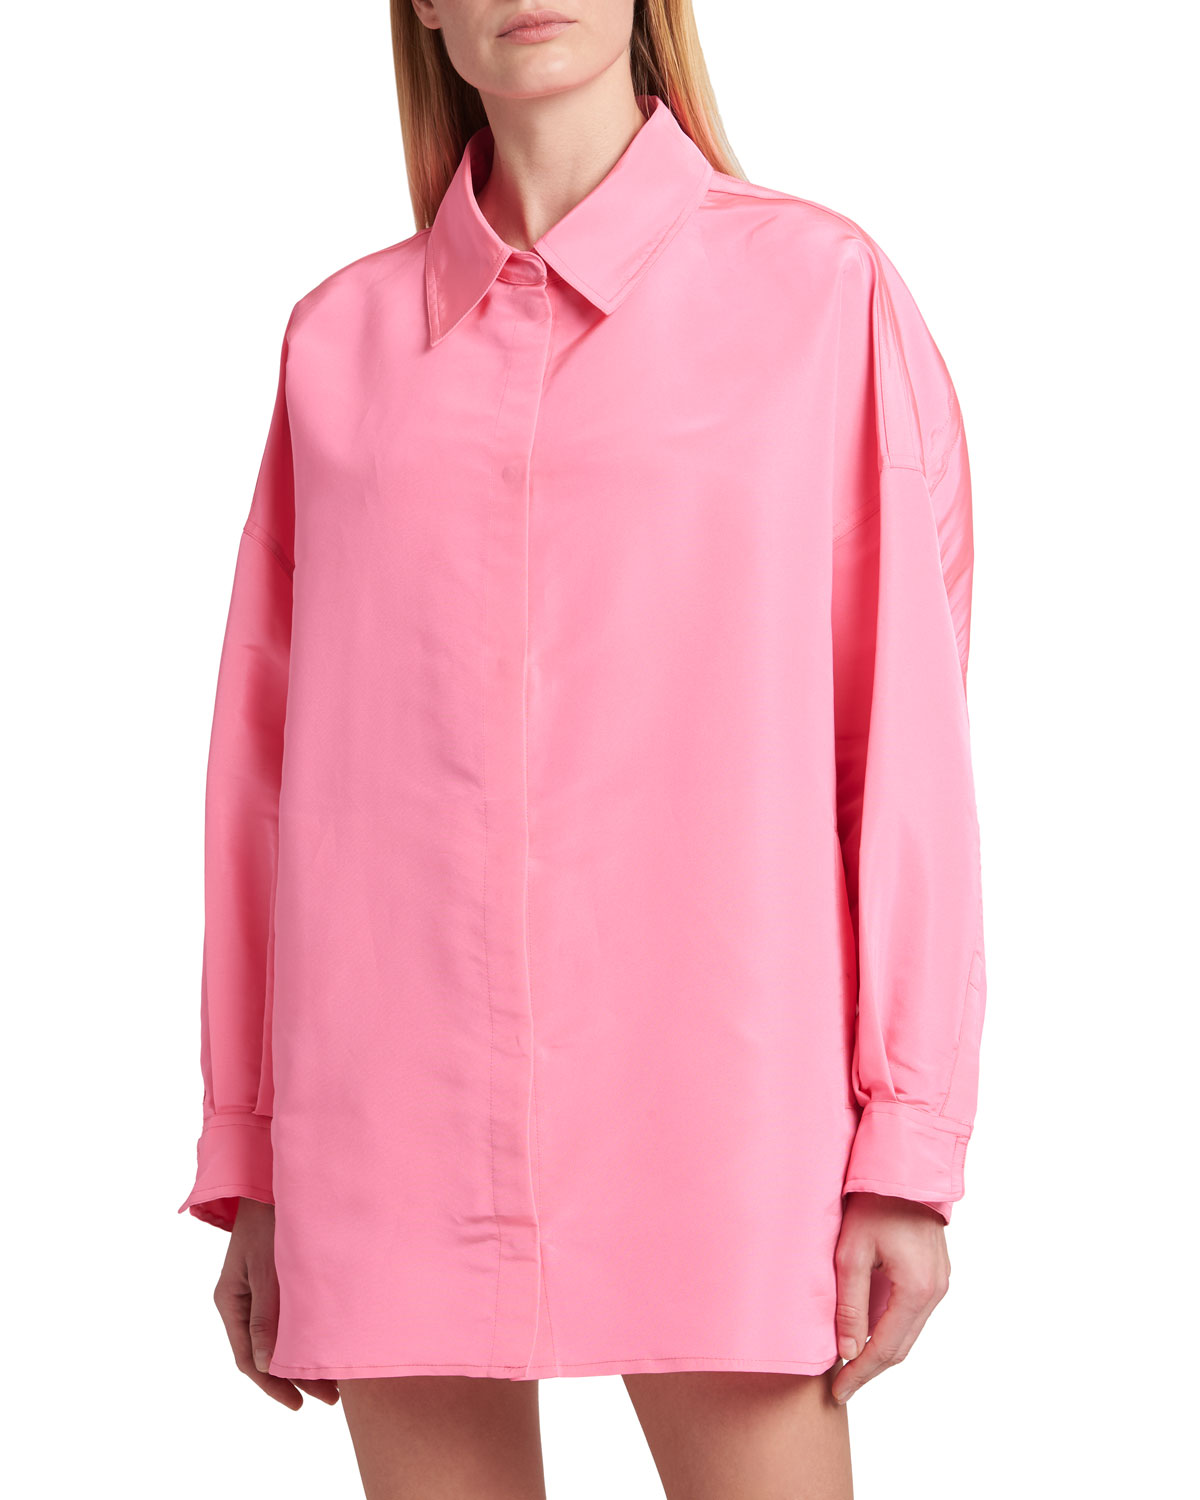 Valentino Jackets OVERSIZED BUTTON-DOWN TOP